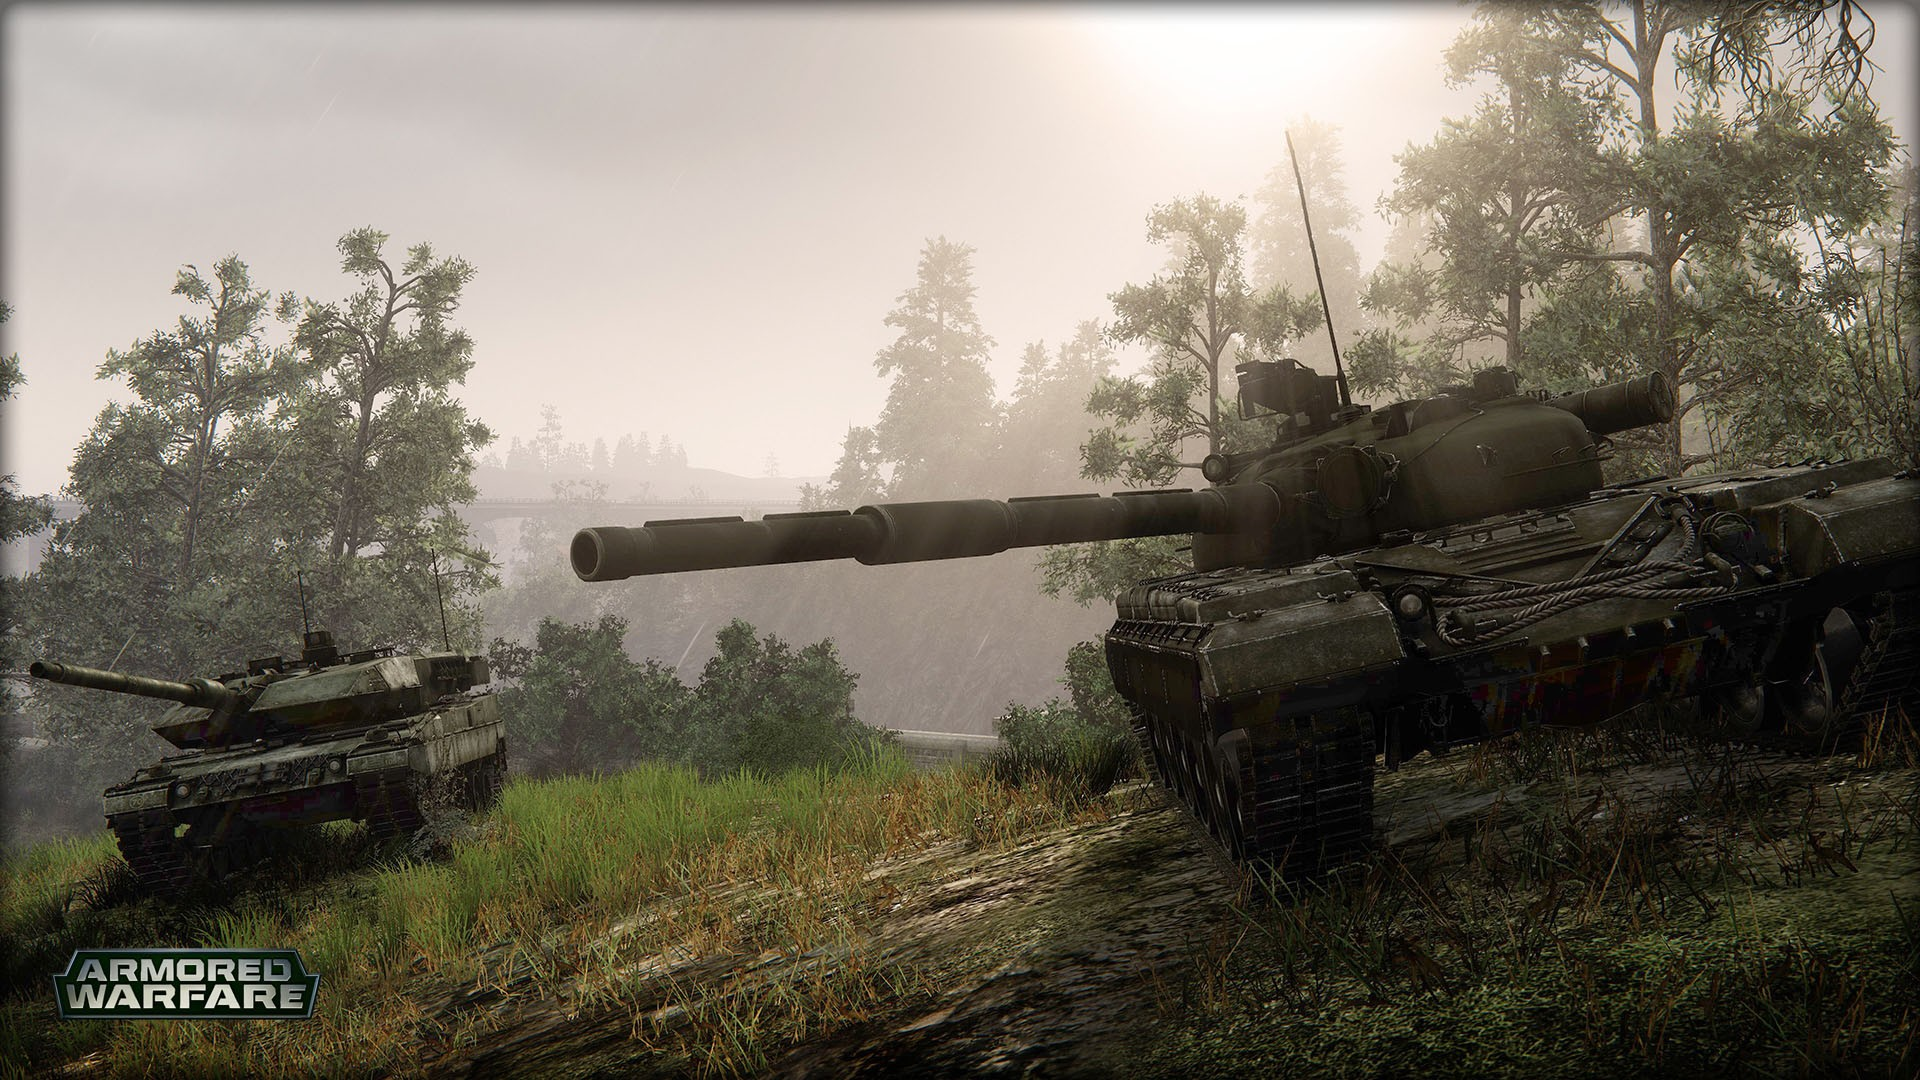 background - Aktuální stav Armored Warfare